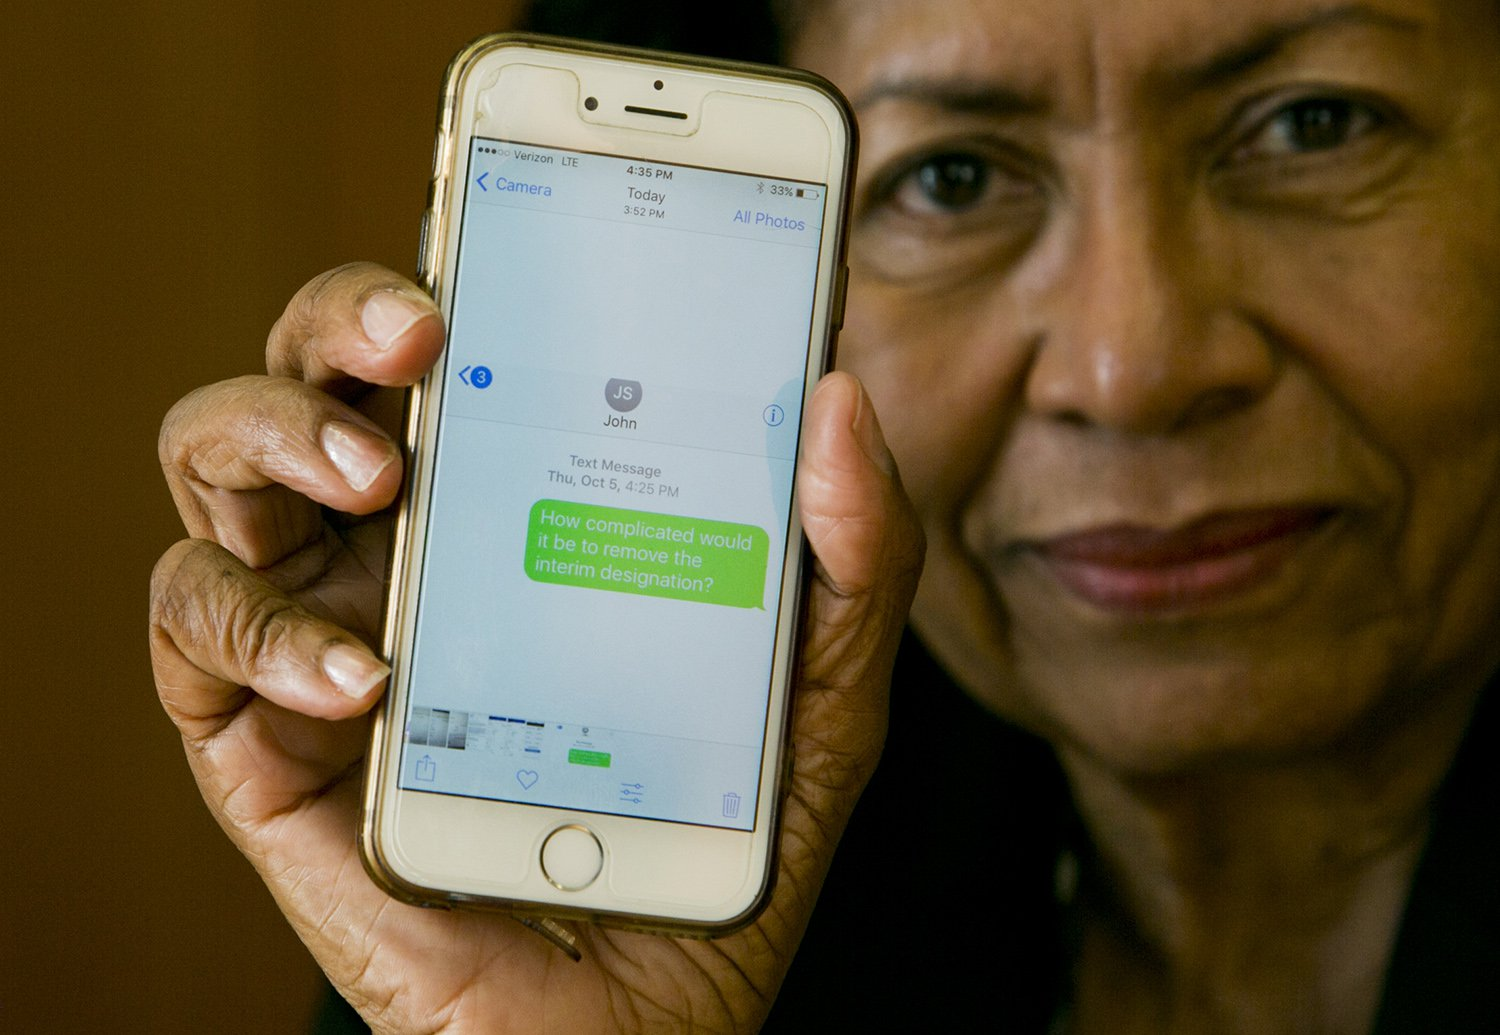 """Prairie View A&M University interim President Ruth Simmons shows a screen shot of a text message she sent in early October to Texas A&M University System Chancellor John Sharp to inquire about removing her interim designation. The message said, """"""""How complicated would it be to remove the interim designation?"""""""